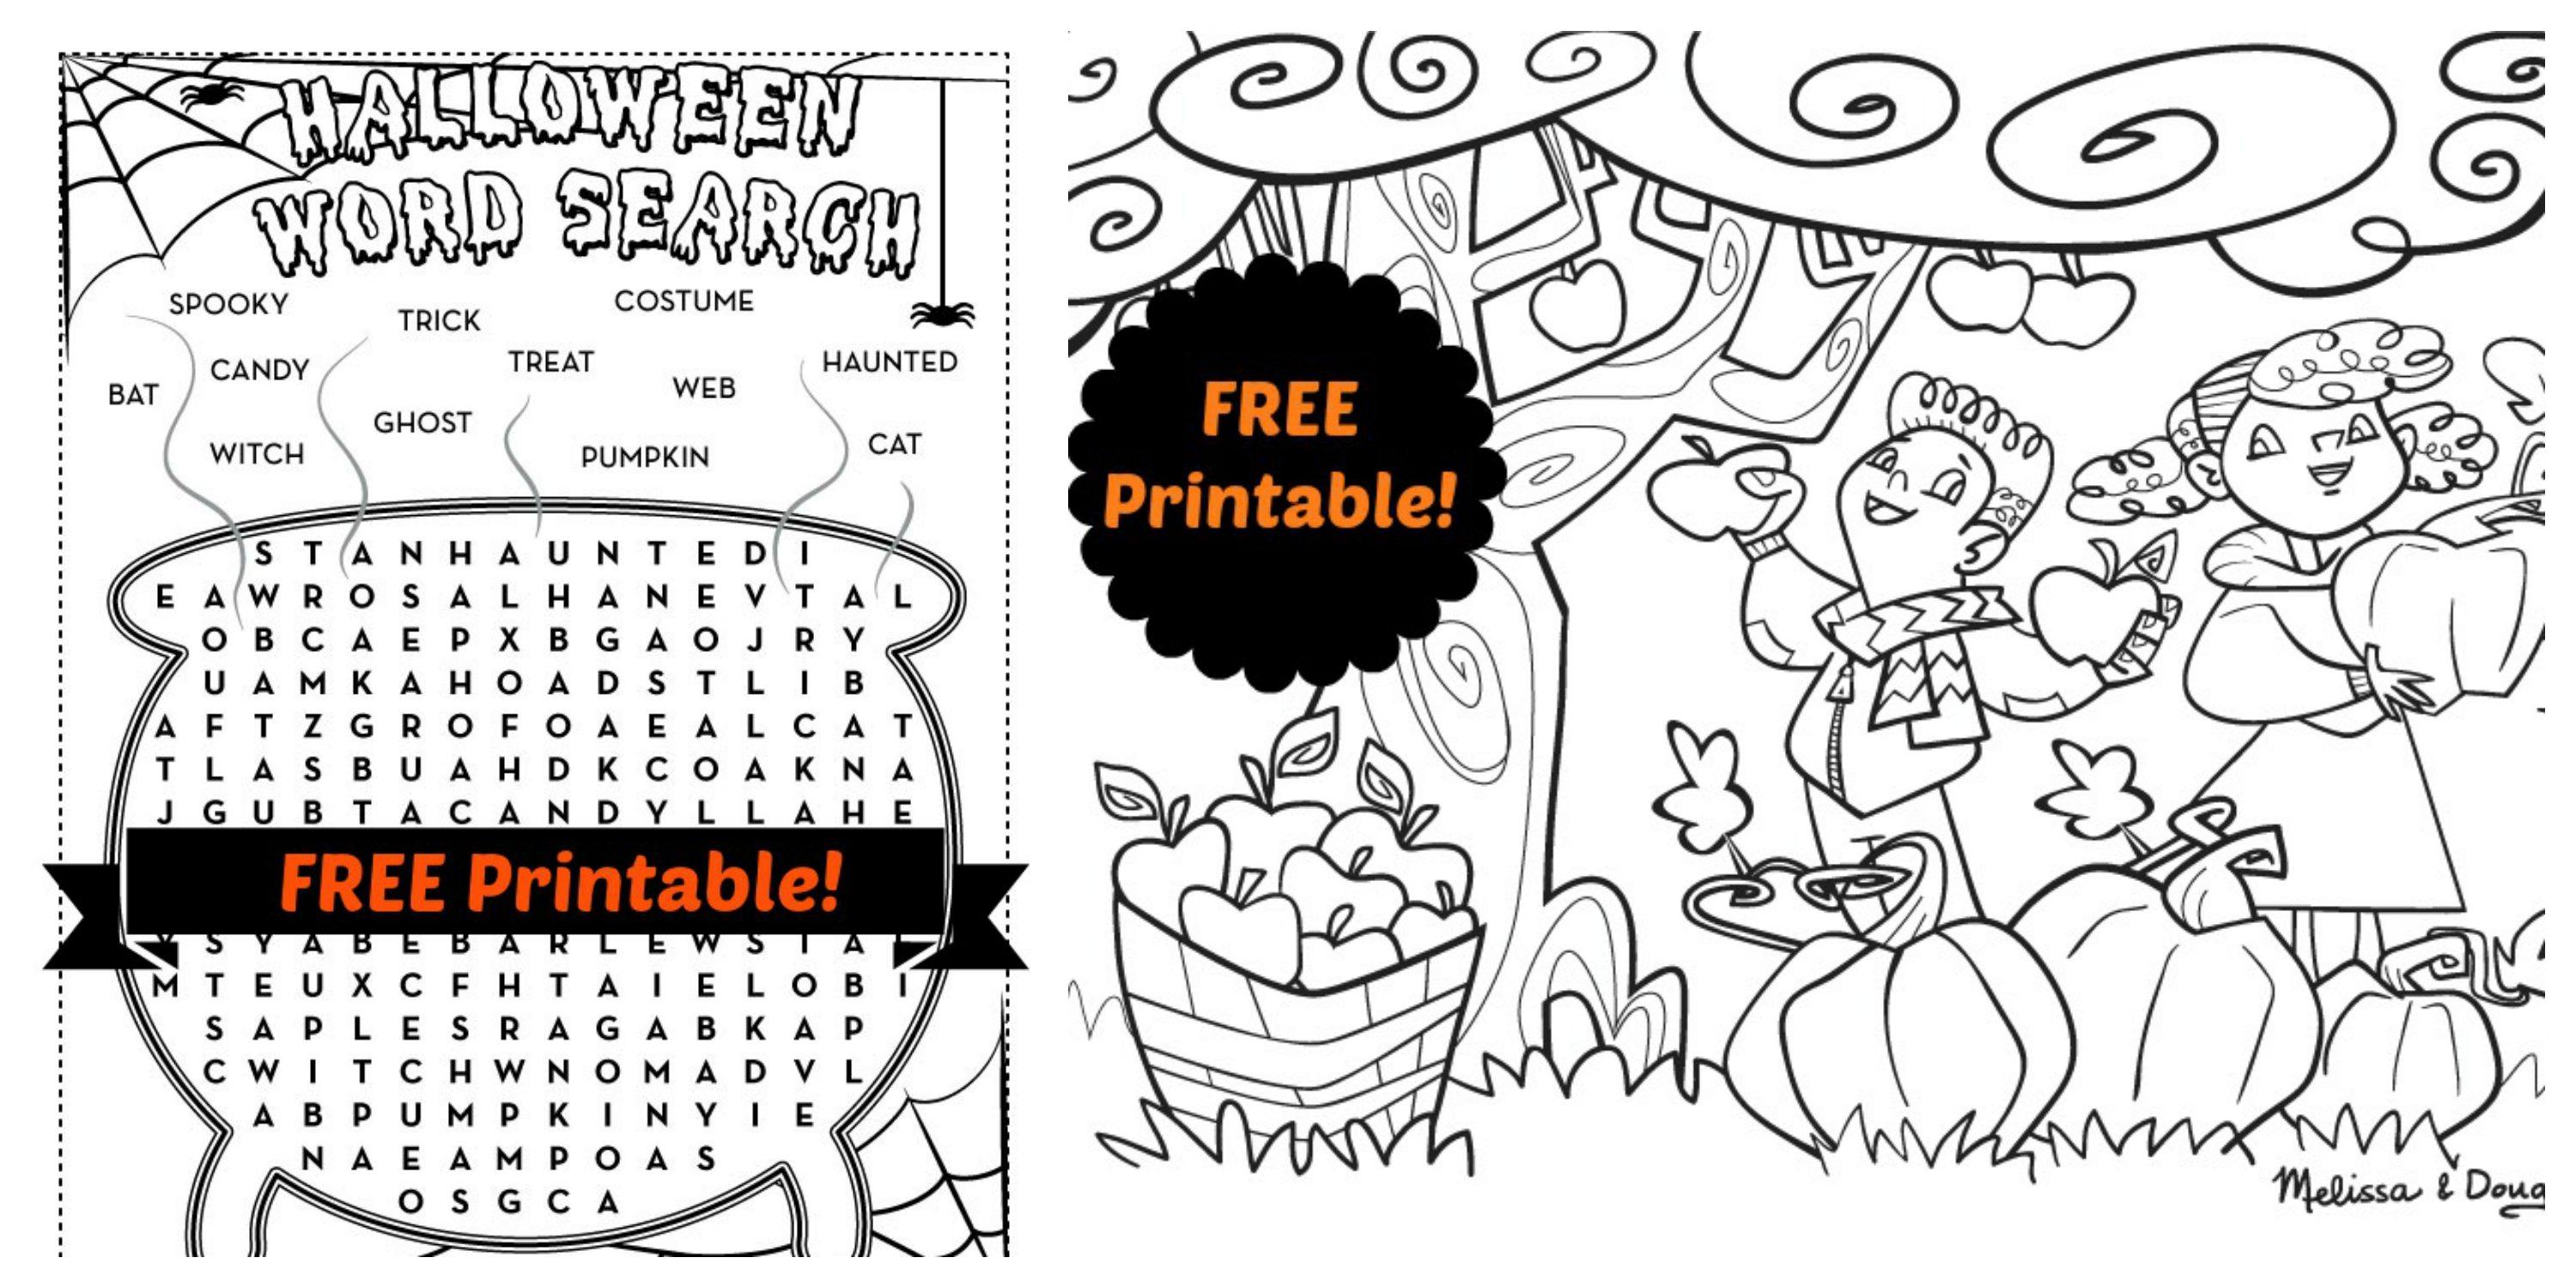 2 free printable halloween activity pages melissa doug - Free Halloween Printables For Kids 2